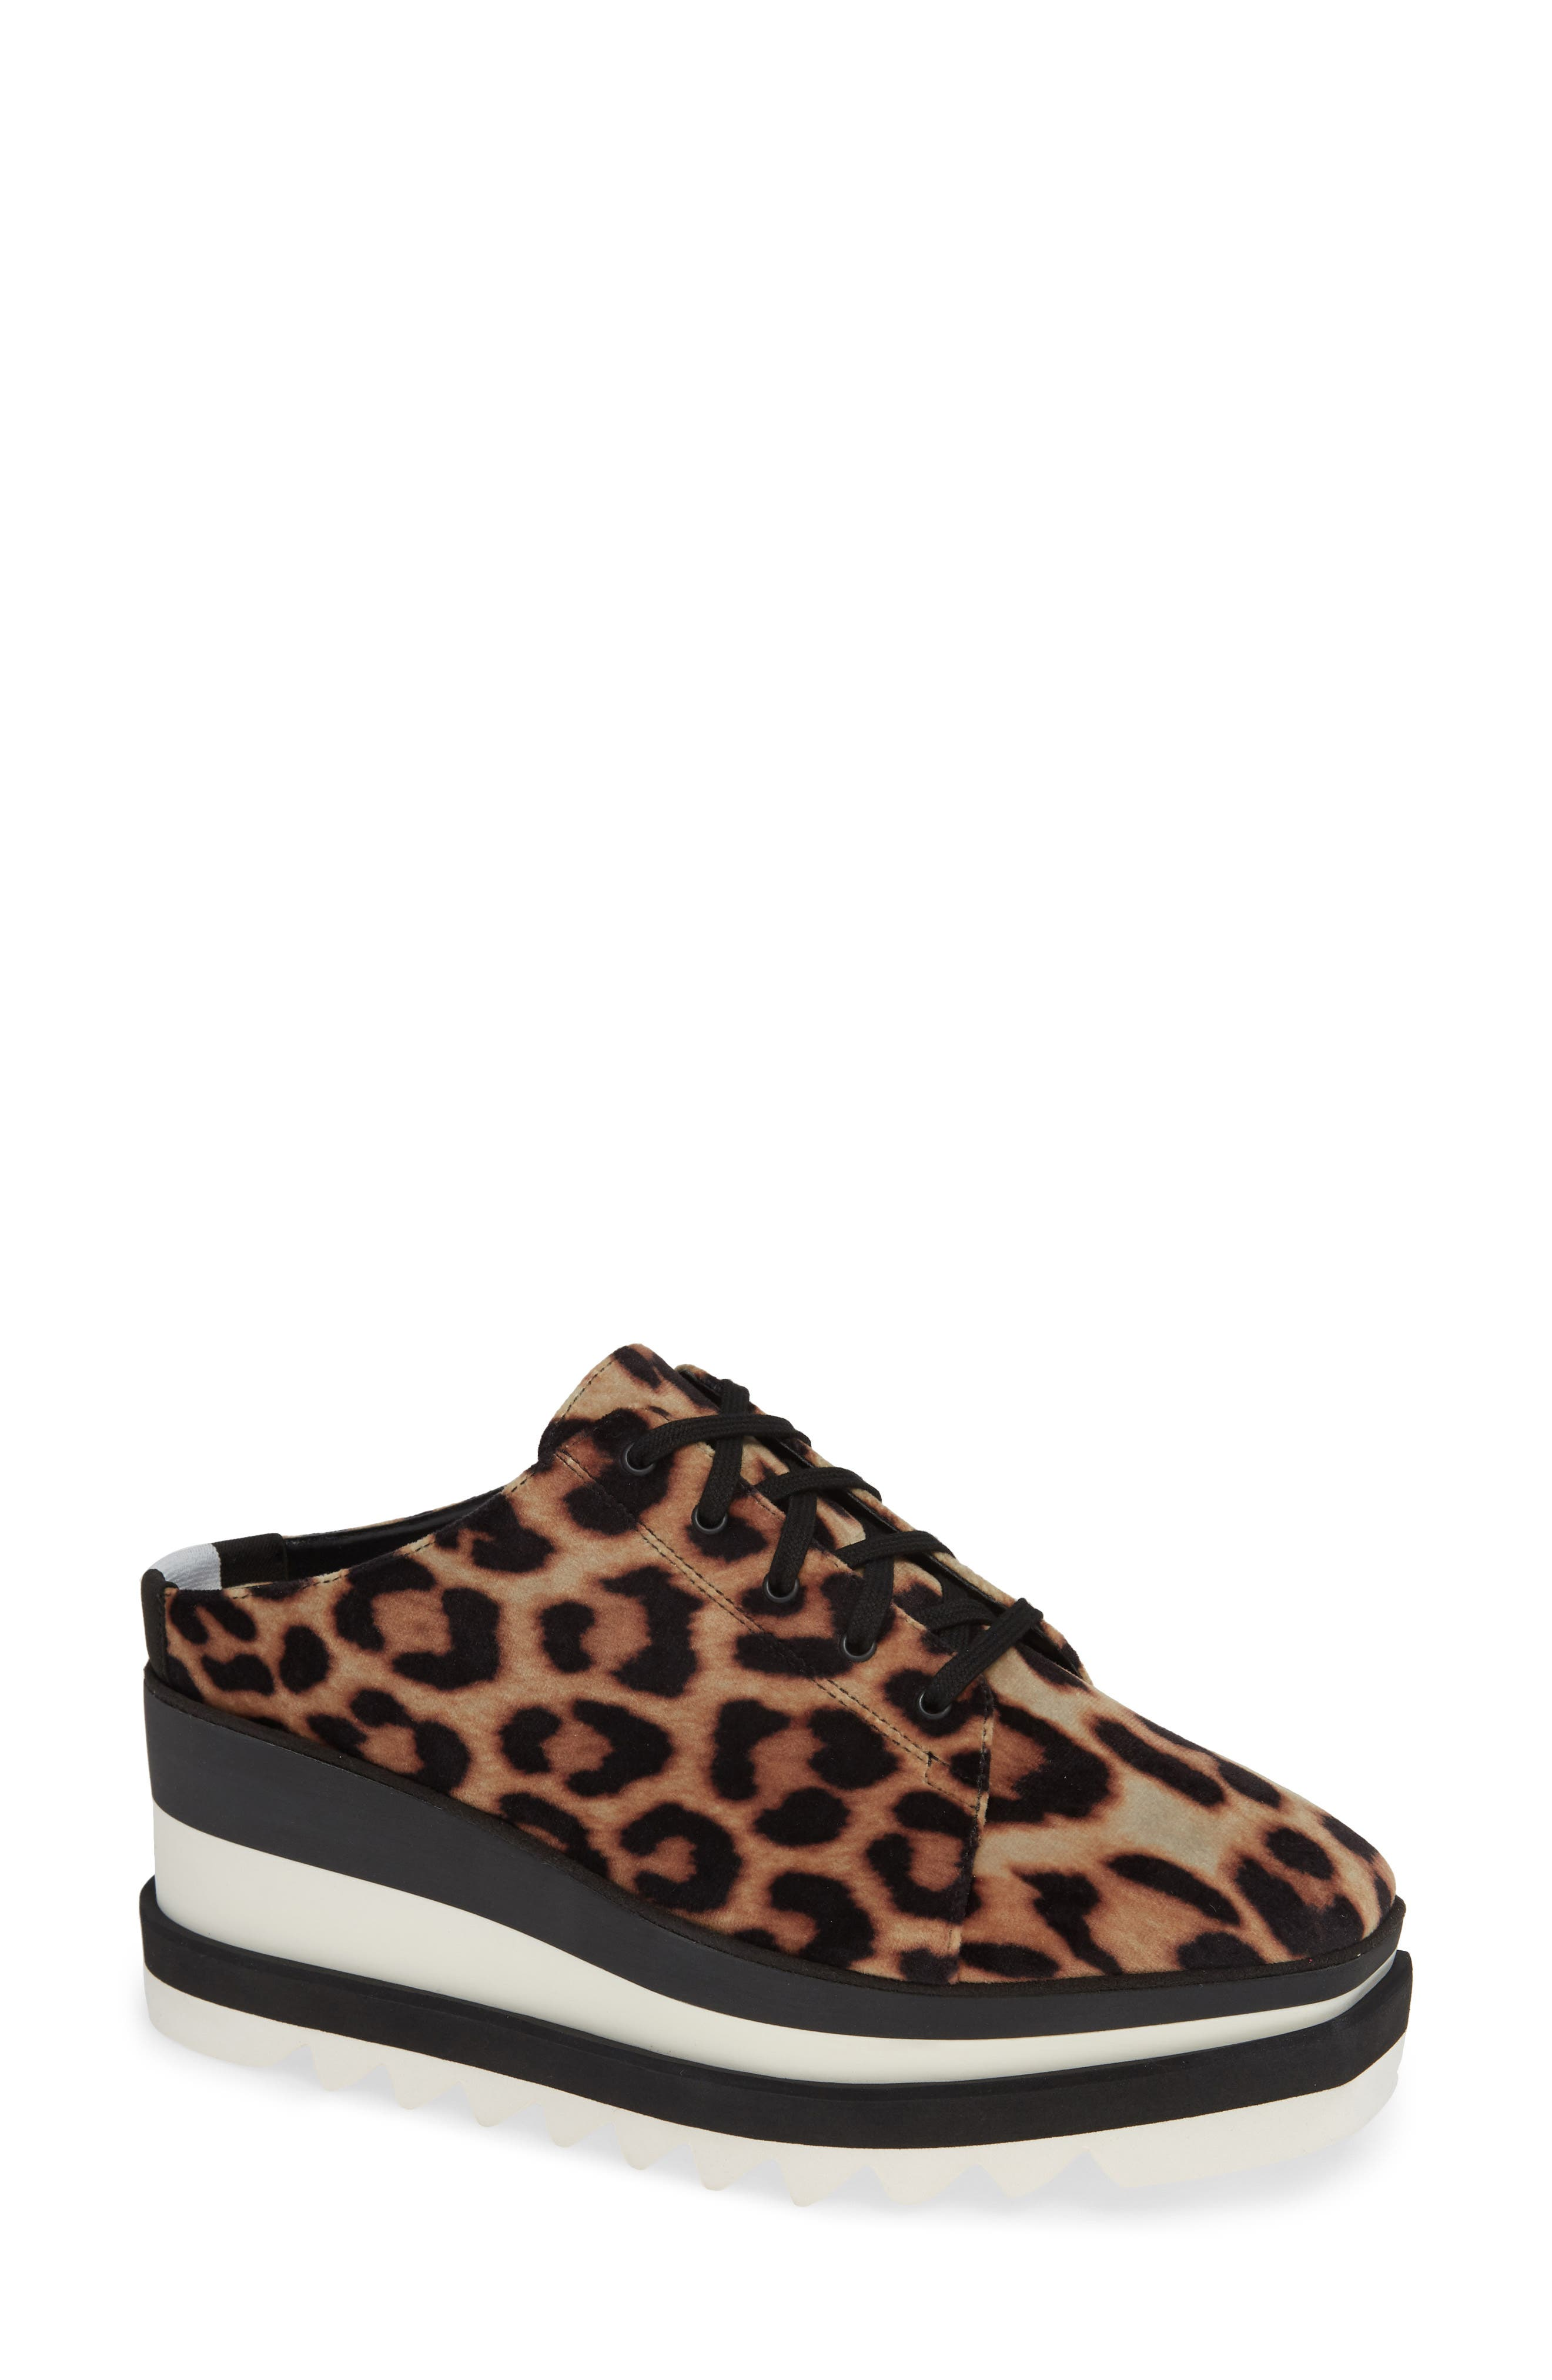 Sneak-Elyse Platform Mule, Main, color, LEOPARD PRINT